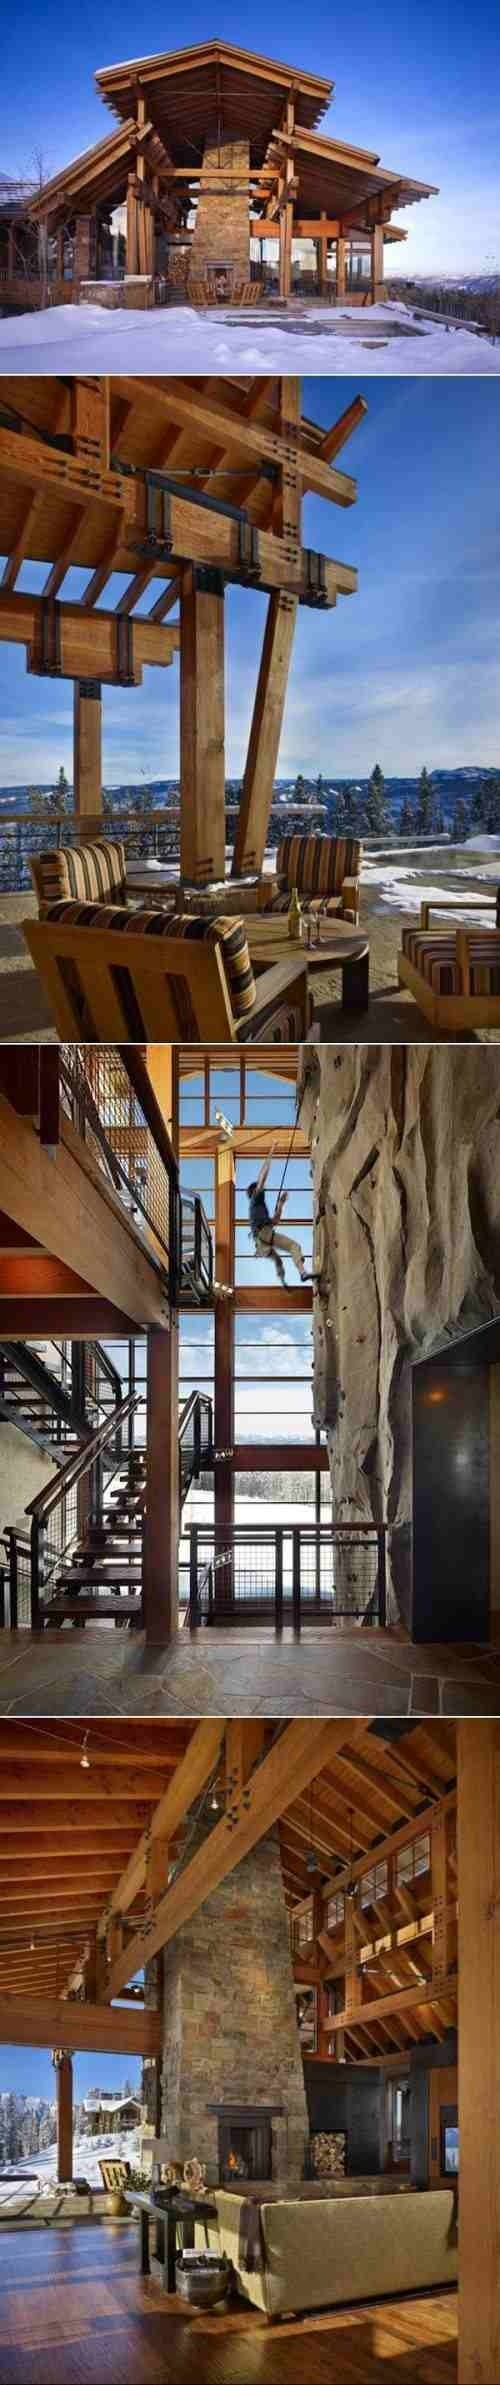 39 best rock climbing images on pinterest rock climbing indoor awesome mountain home with indoor rock climbing wall and open air floor plan